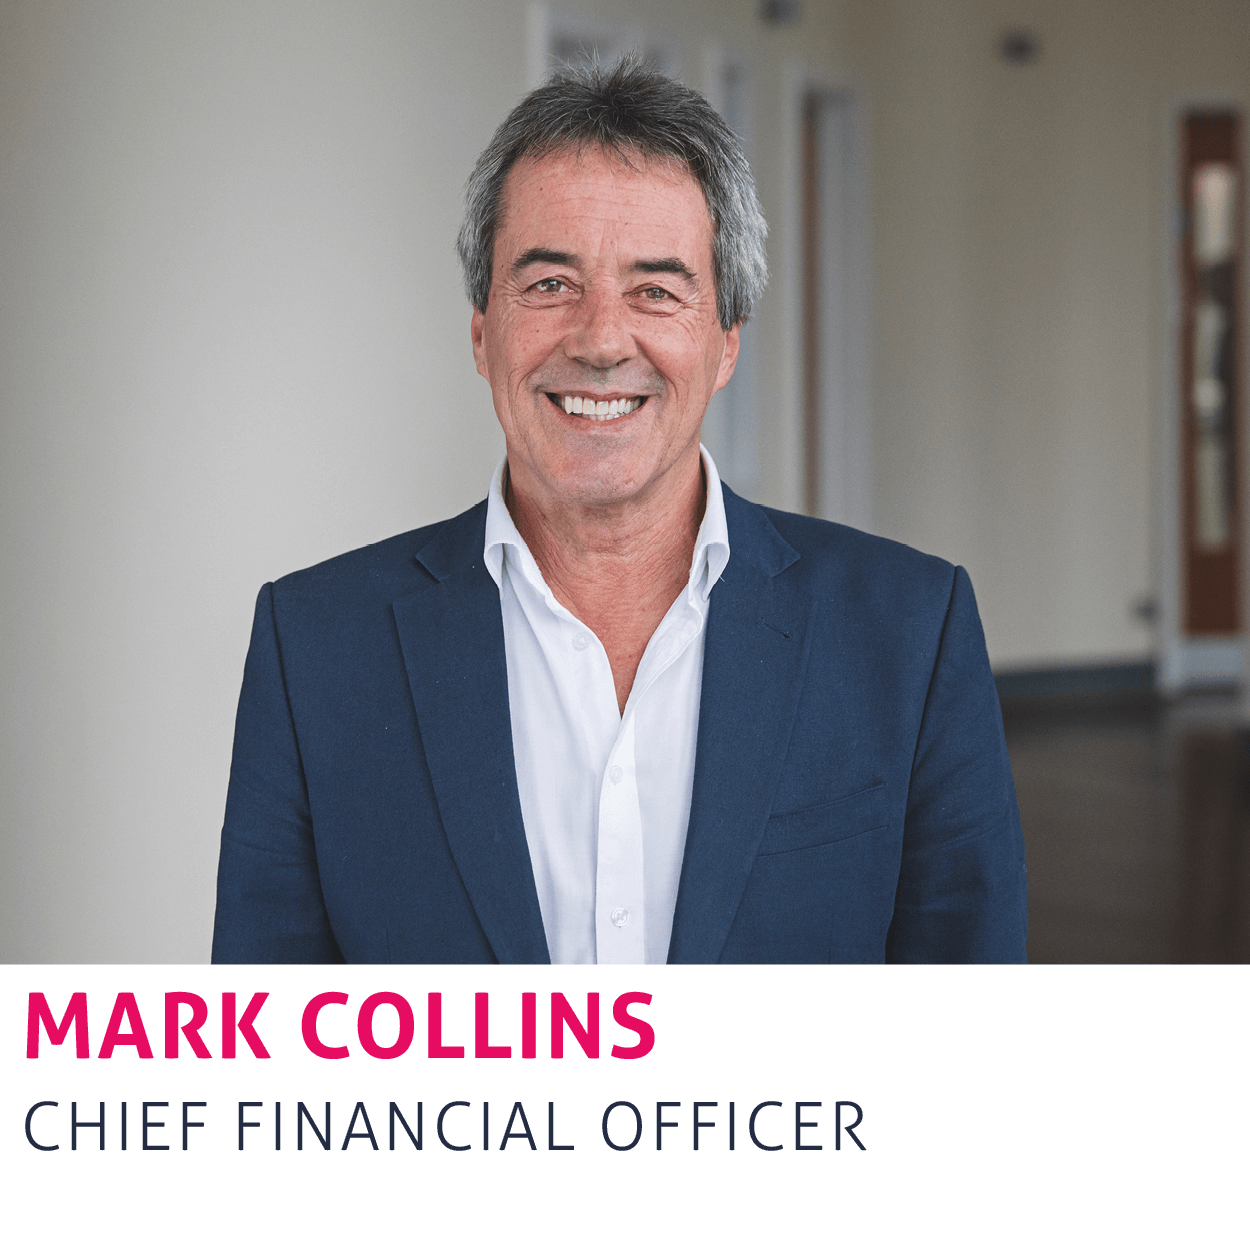 Mark Collins, Chief Financial Officer